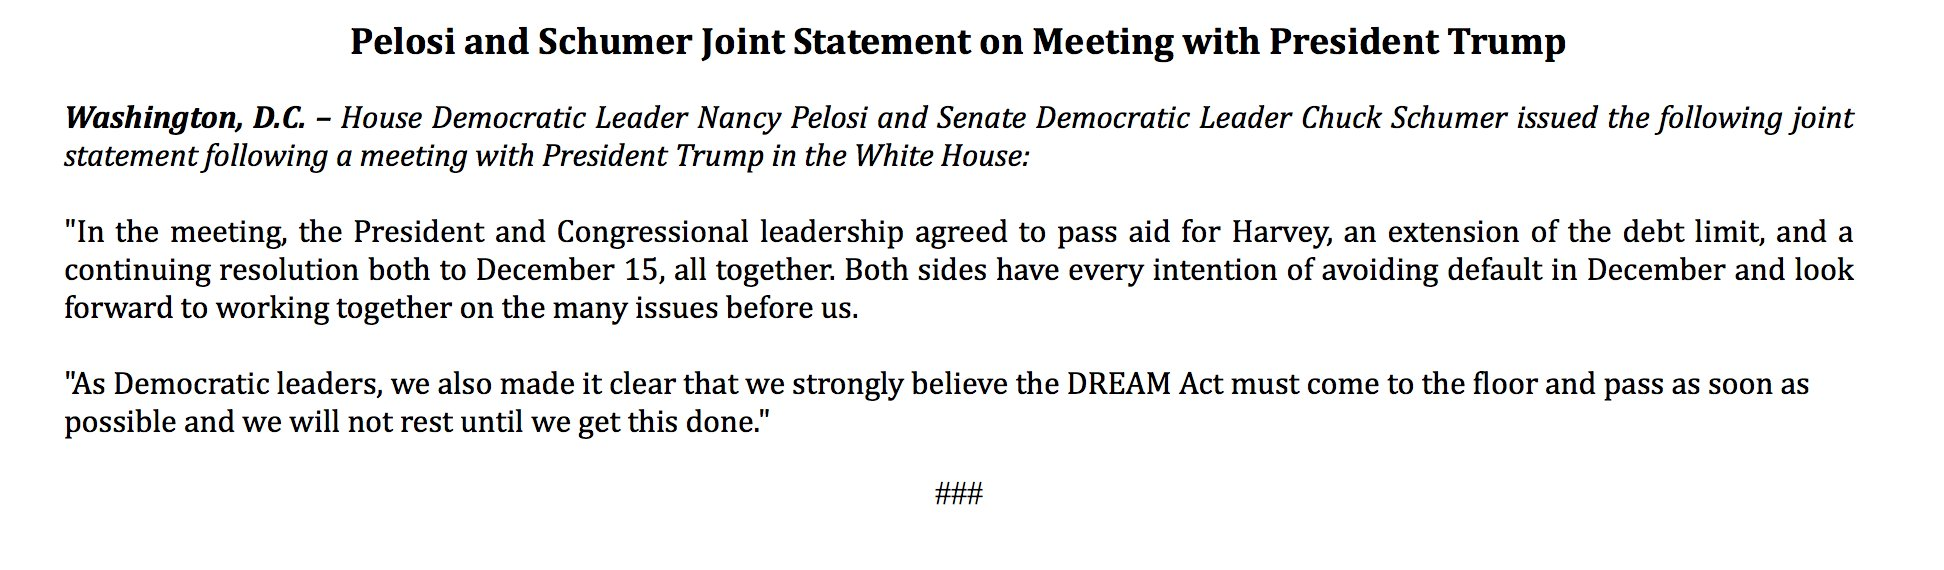 Pelosi and Schumer Joint Statement on Meeting with President Trump https://t.co/j6NbZN0pi1